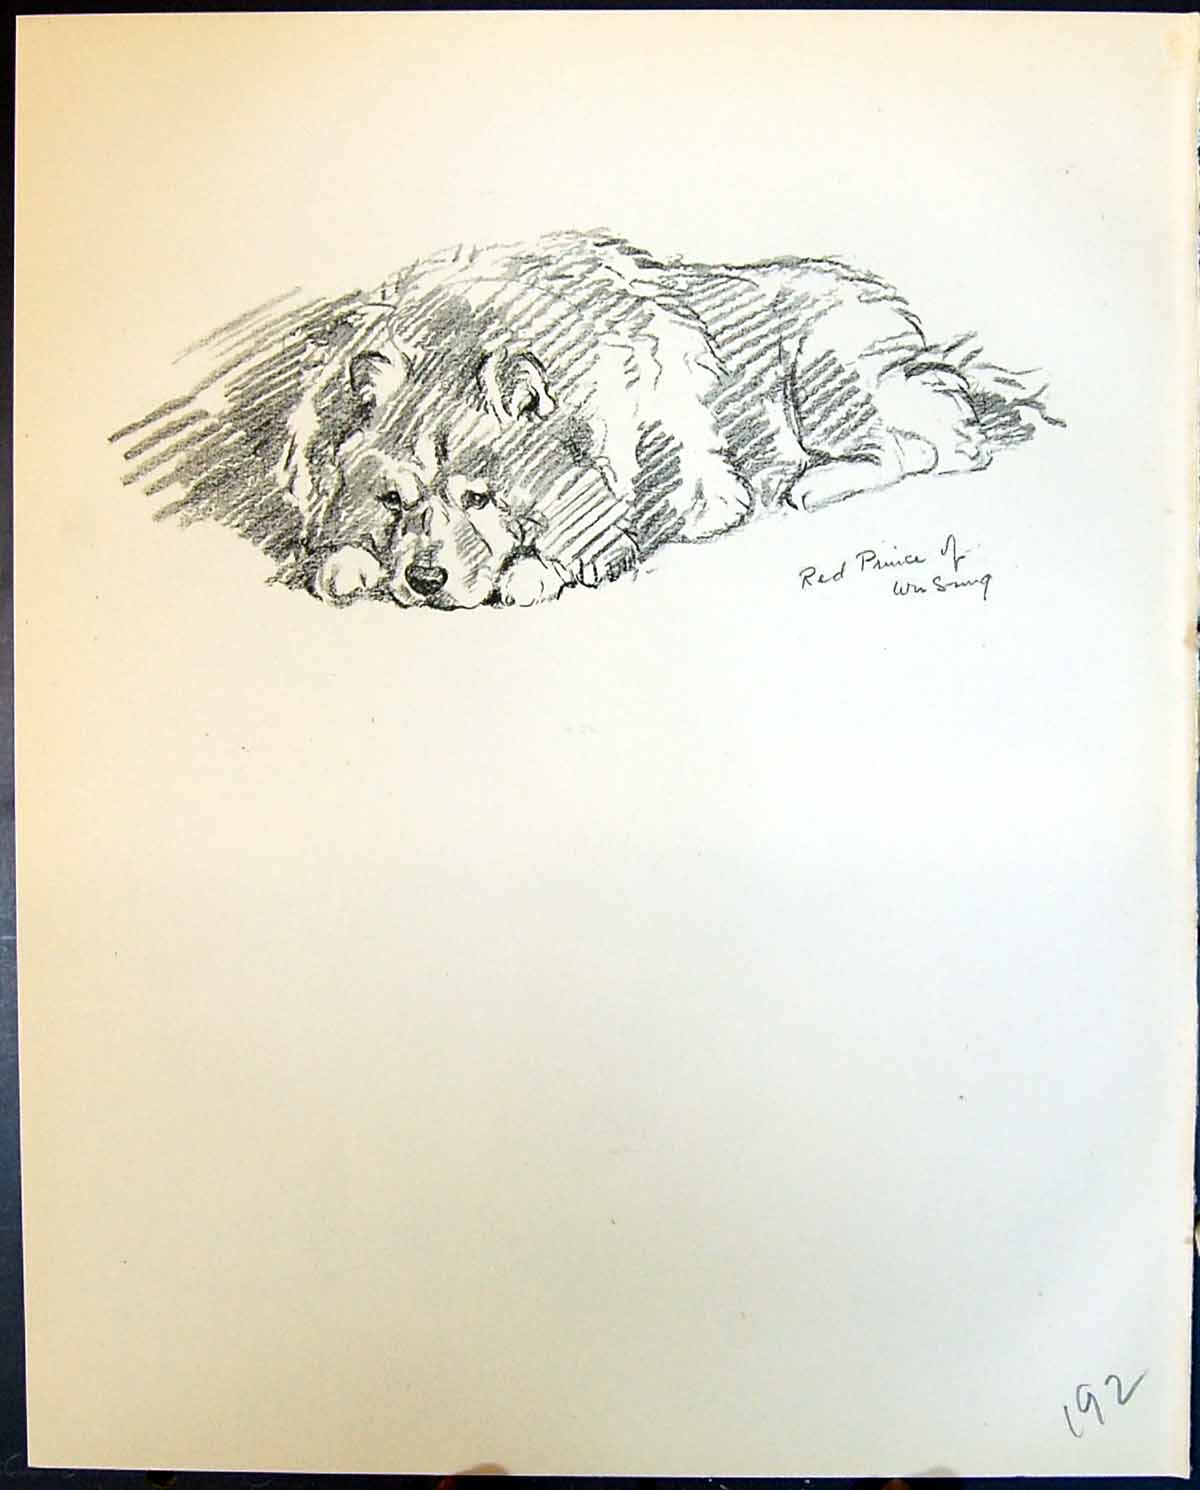 [Print Red Prince Wu Sung Lalli Pet Dogs Animals Lucy Dawson 1936 192G344 Old Original]